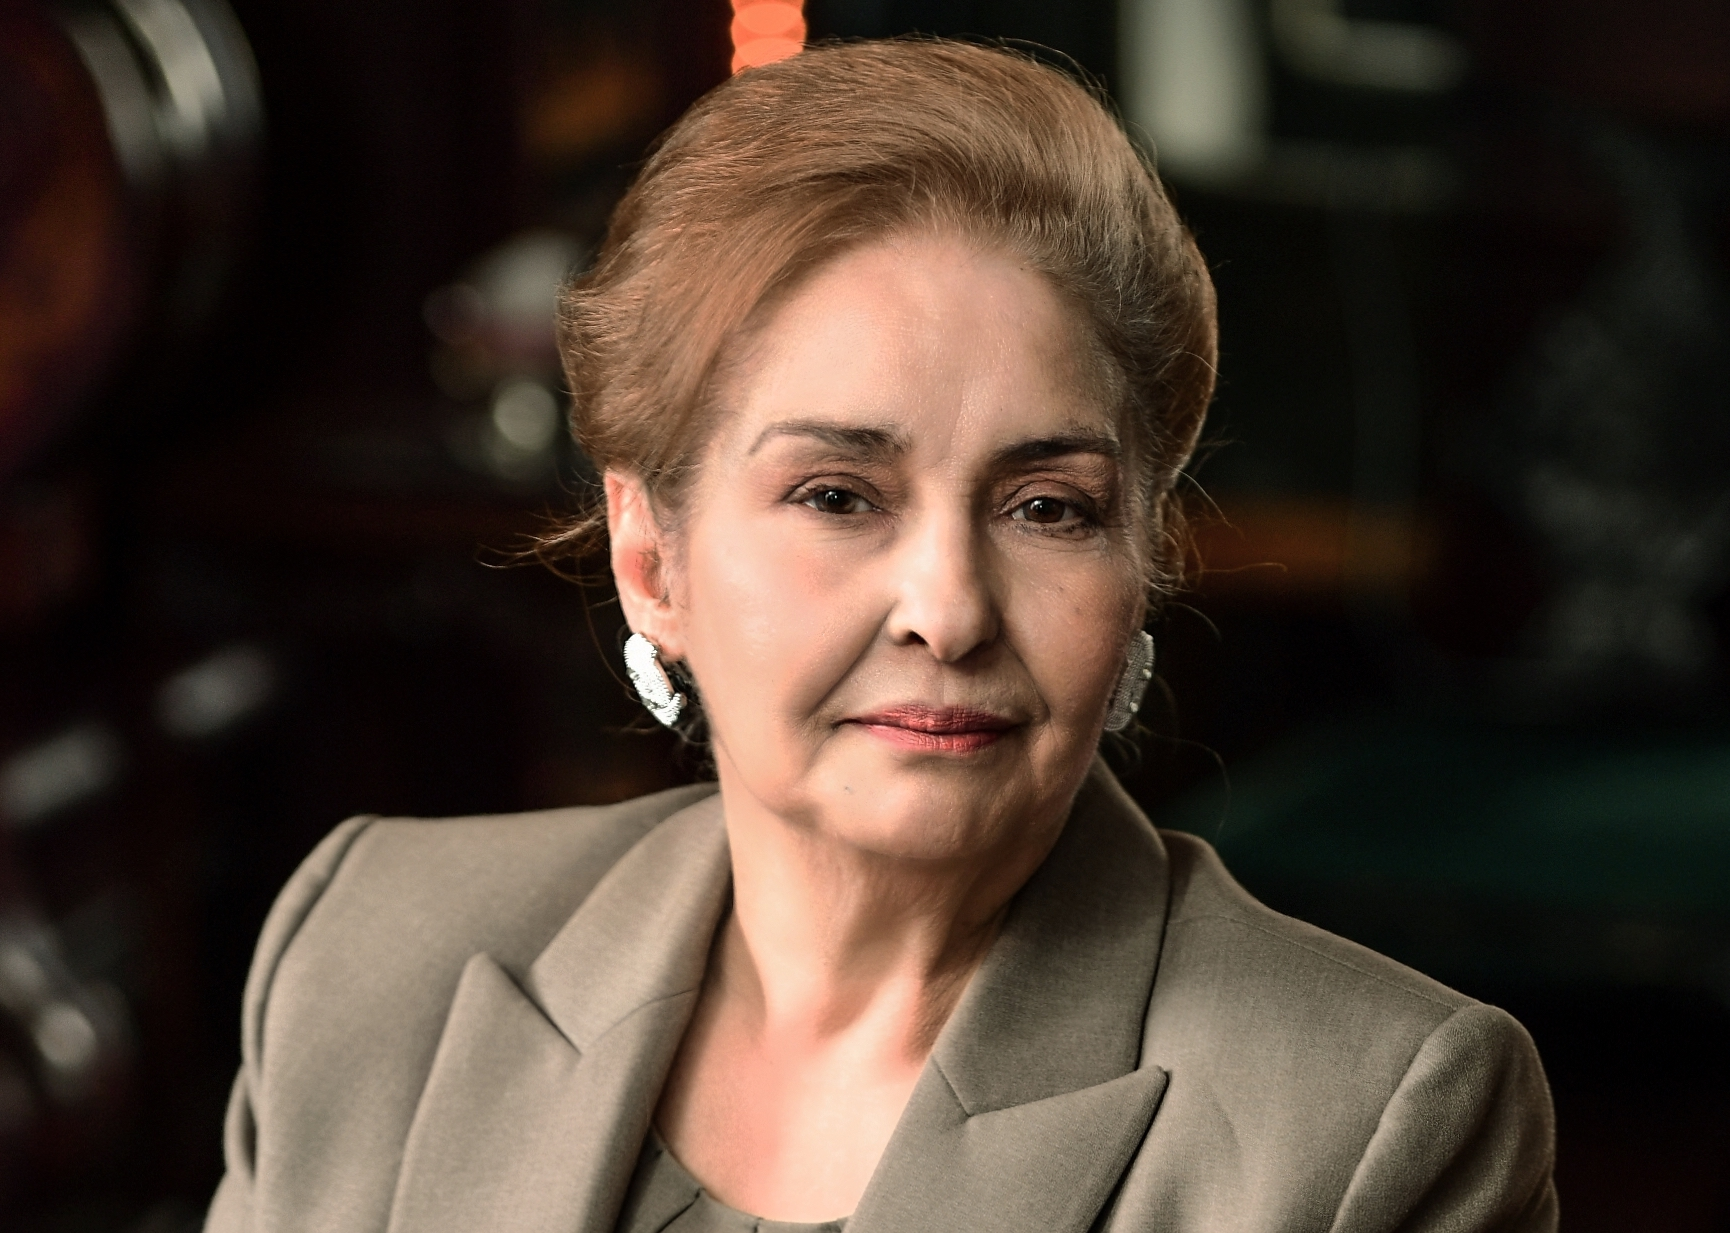 Nelda Pozo - Jimenez - Jimenez Tobacco is a strong, matriarchal institution, as Nelda is not only the paramount presence in our kitchen, but the ONLY female master blender in the country.